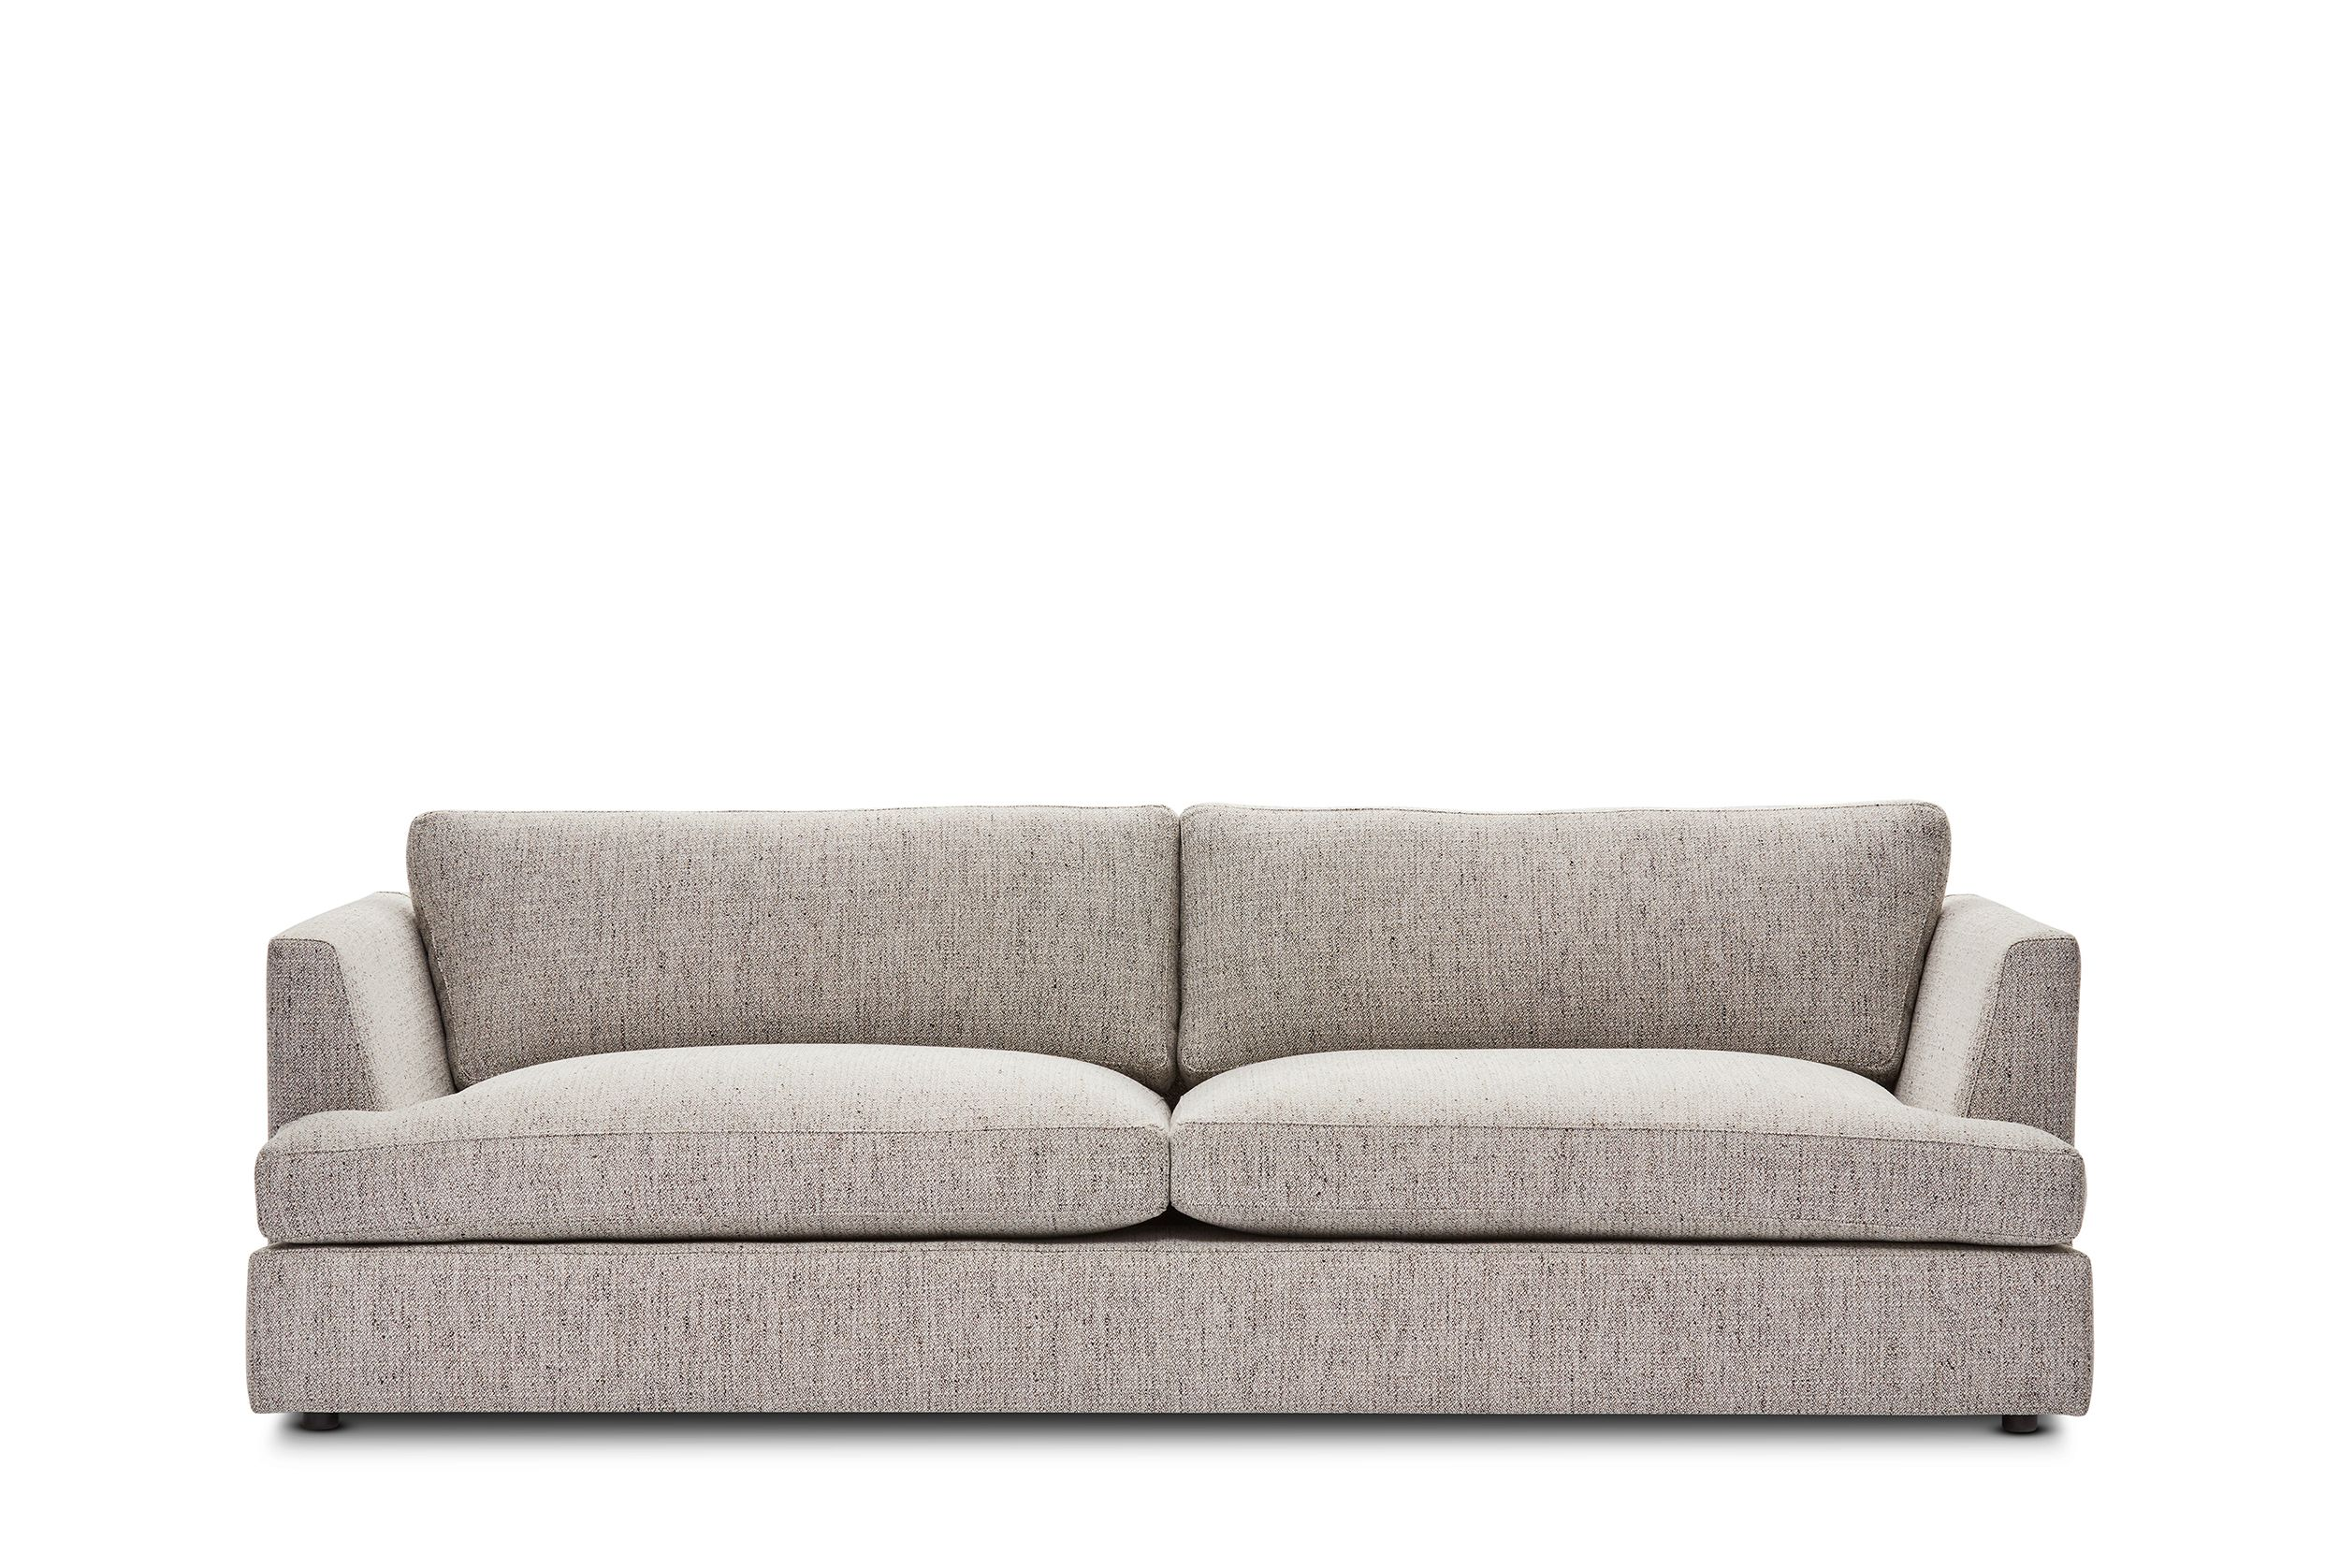 The Niva Sofa By Arthur G Is A Deep Design Suited Most To Those Who Like Curling Up On Their Sofa Available In Your Australian Design Furniture Design Design